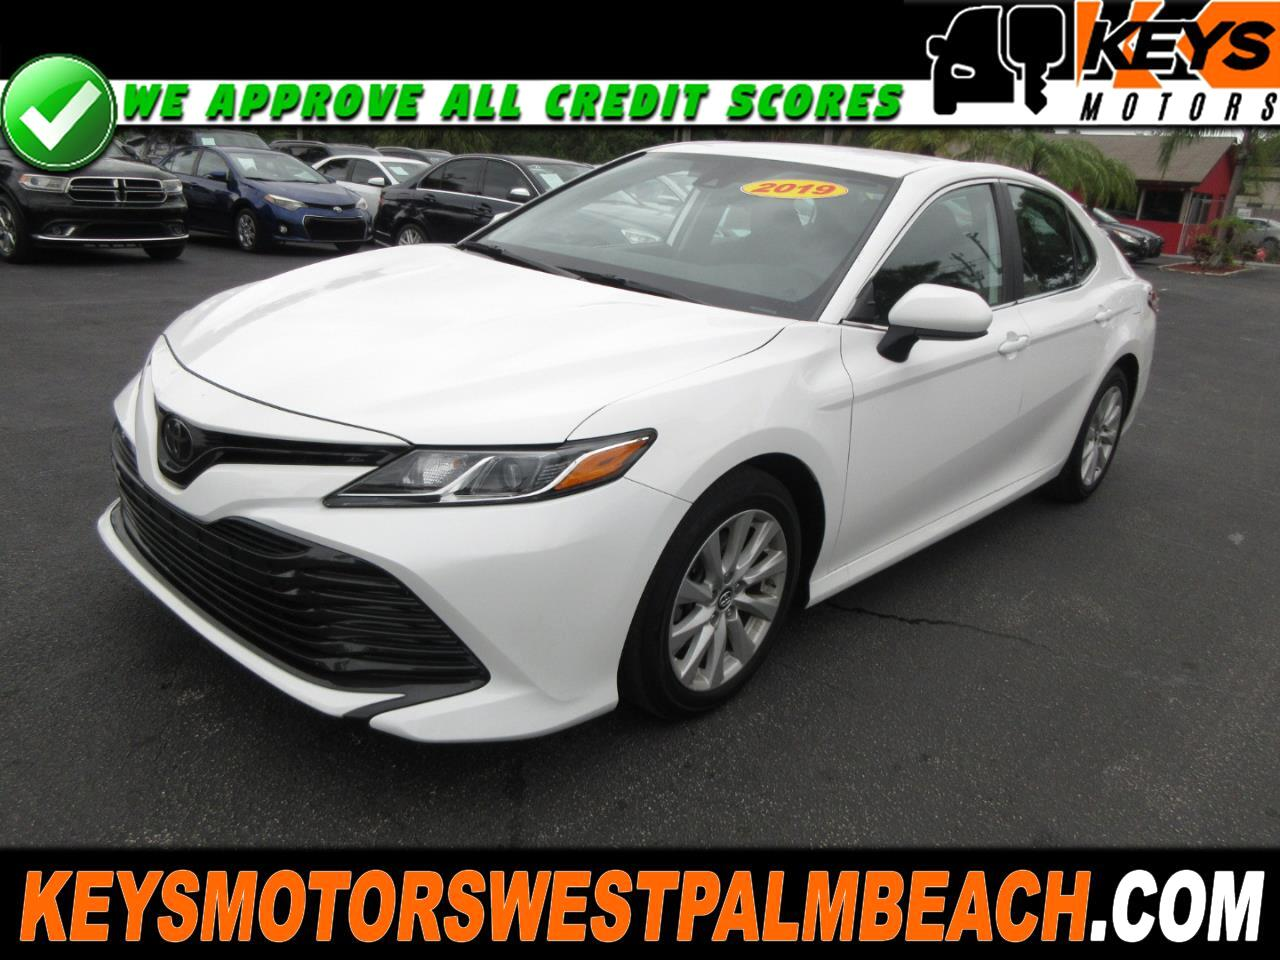 Toyota Camry 4dr Sdn I4 Auto LE (Natl) 2019